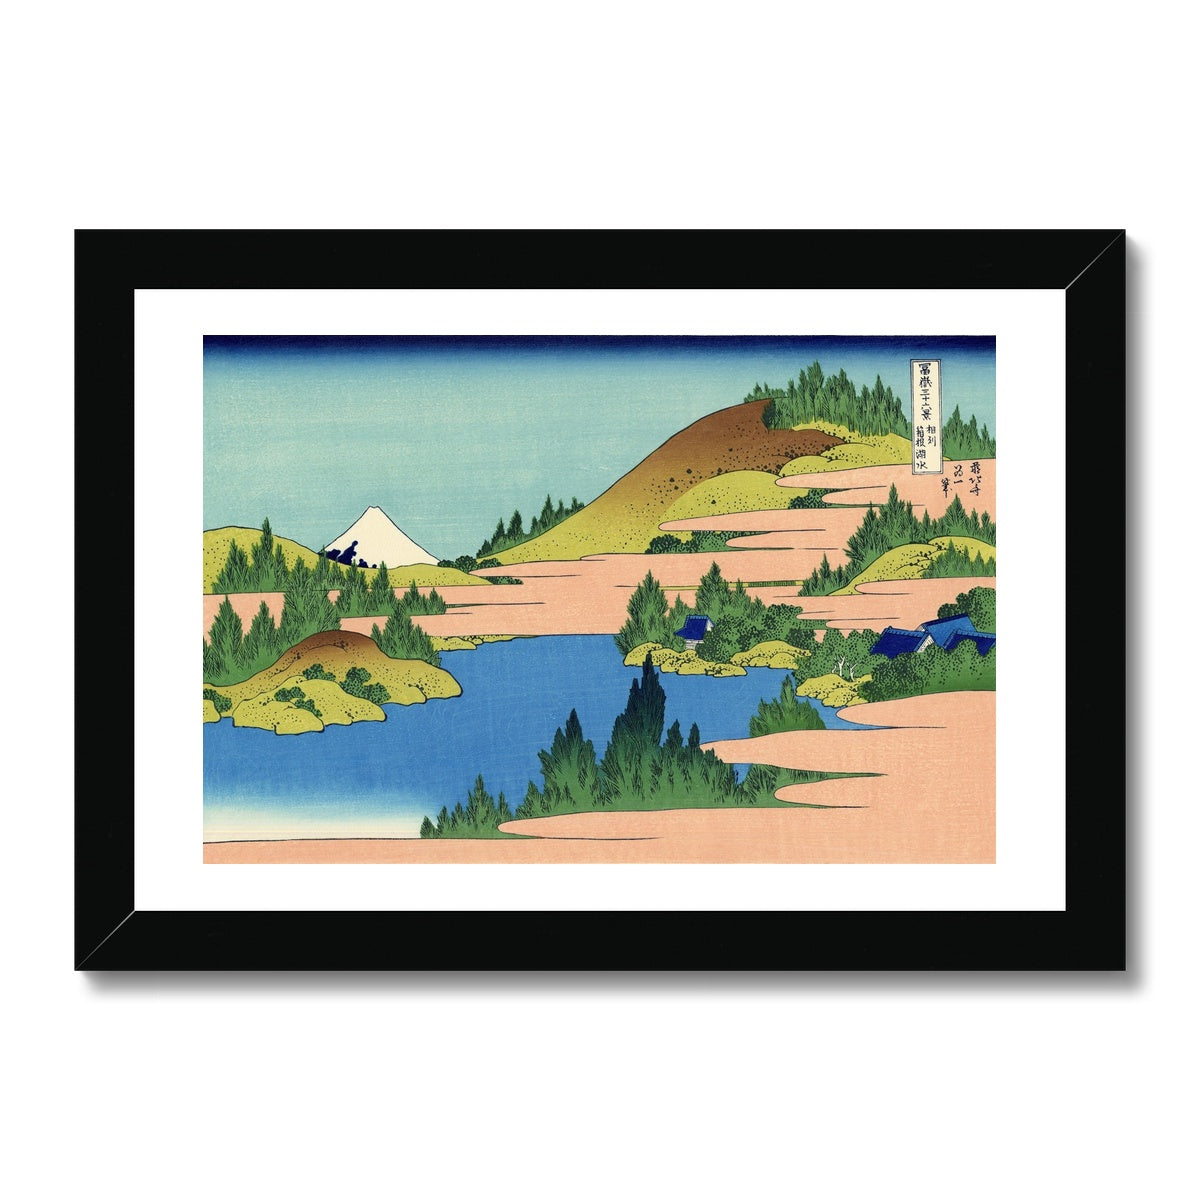 The Lake Of Hakone In Sagami Province - Framed & Mounted Print